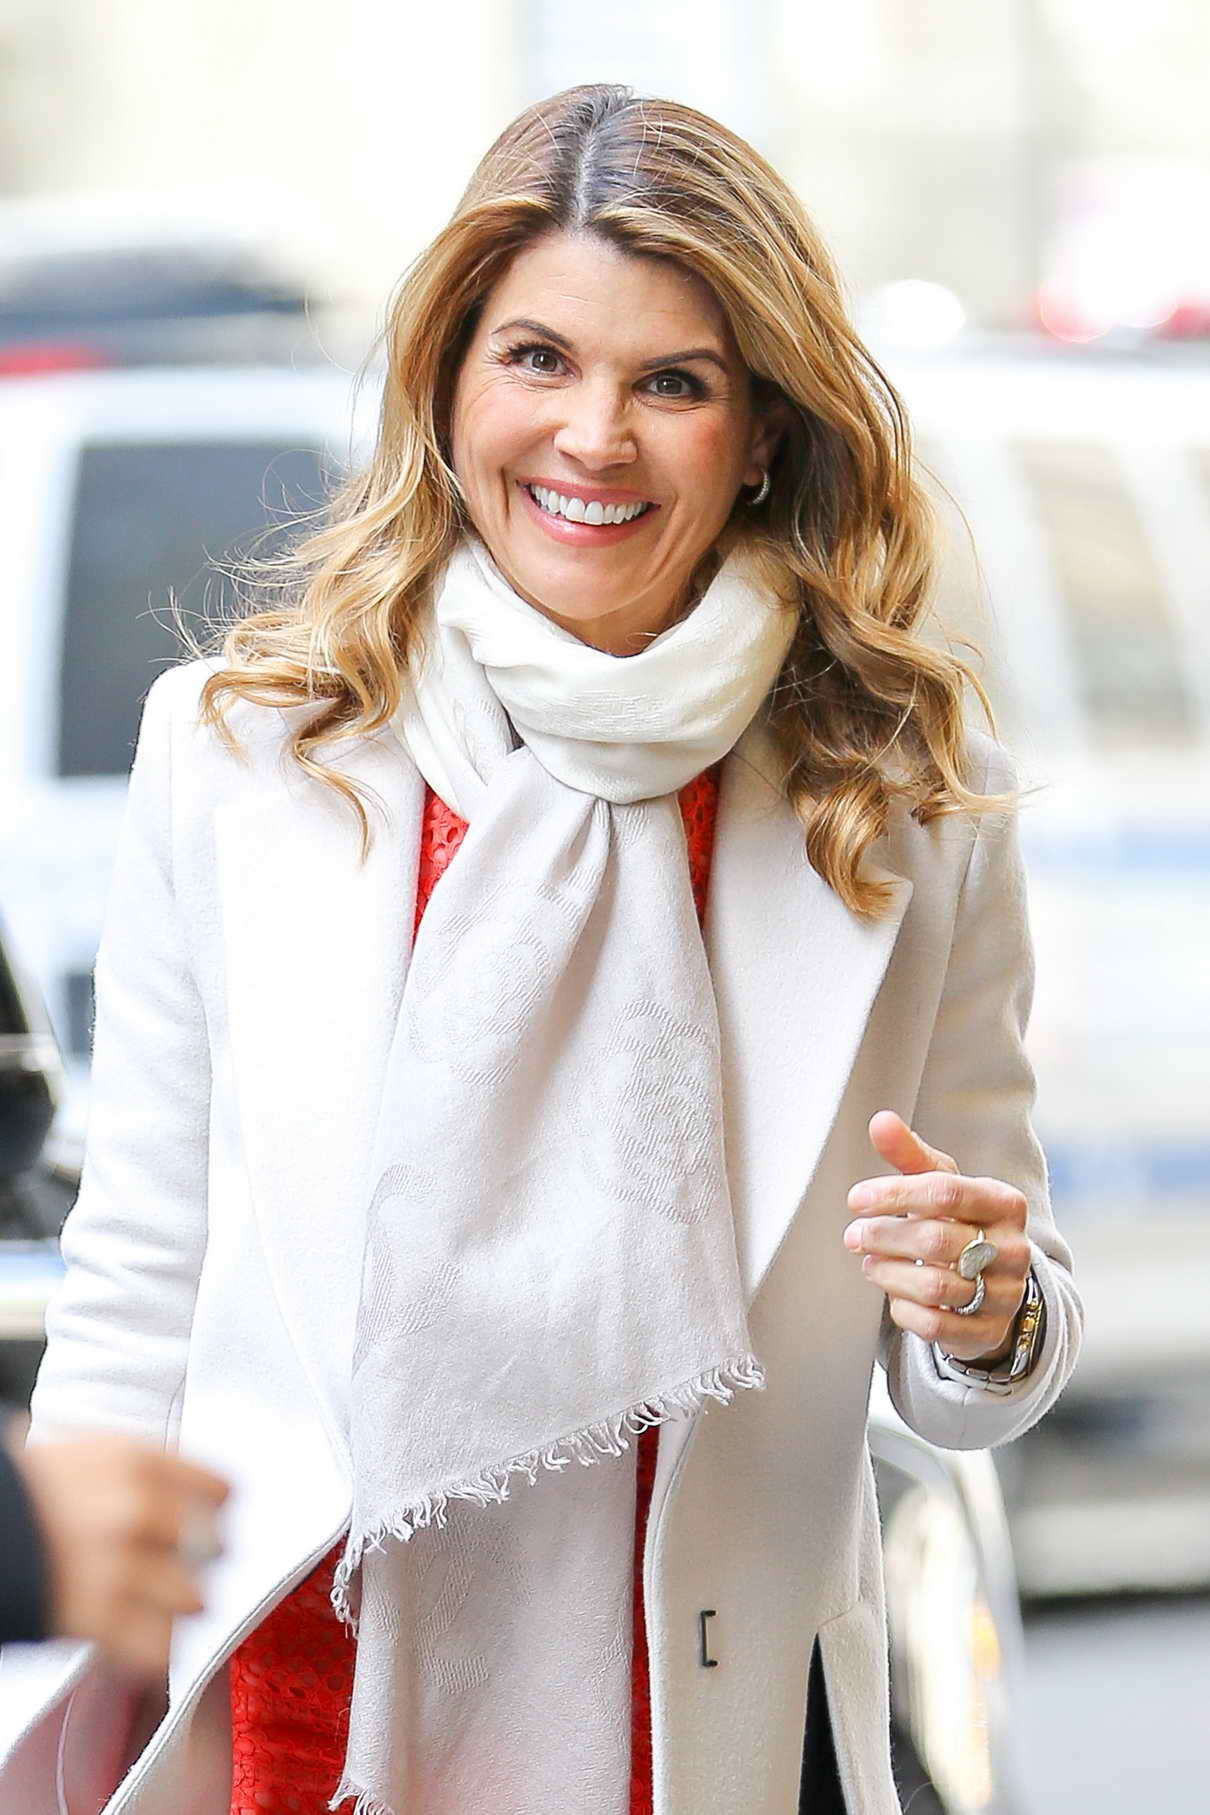 lori loughlin - photo #27